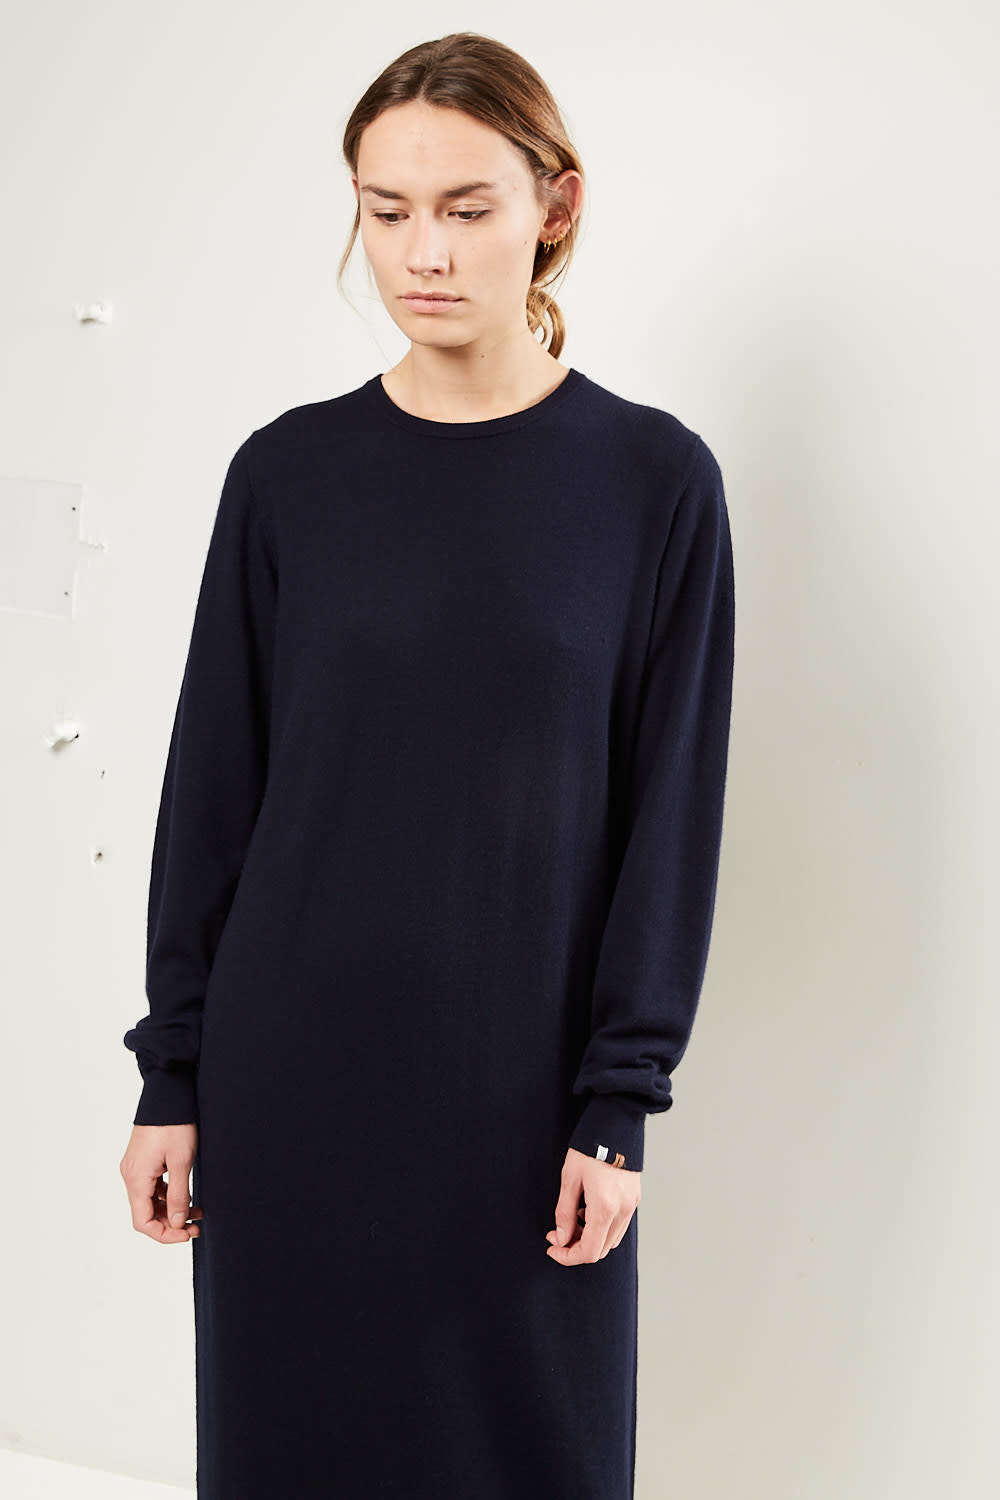 extreme cashmere No95 tiamo long dress